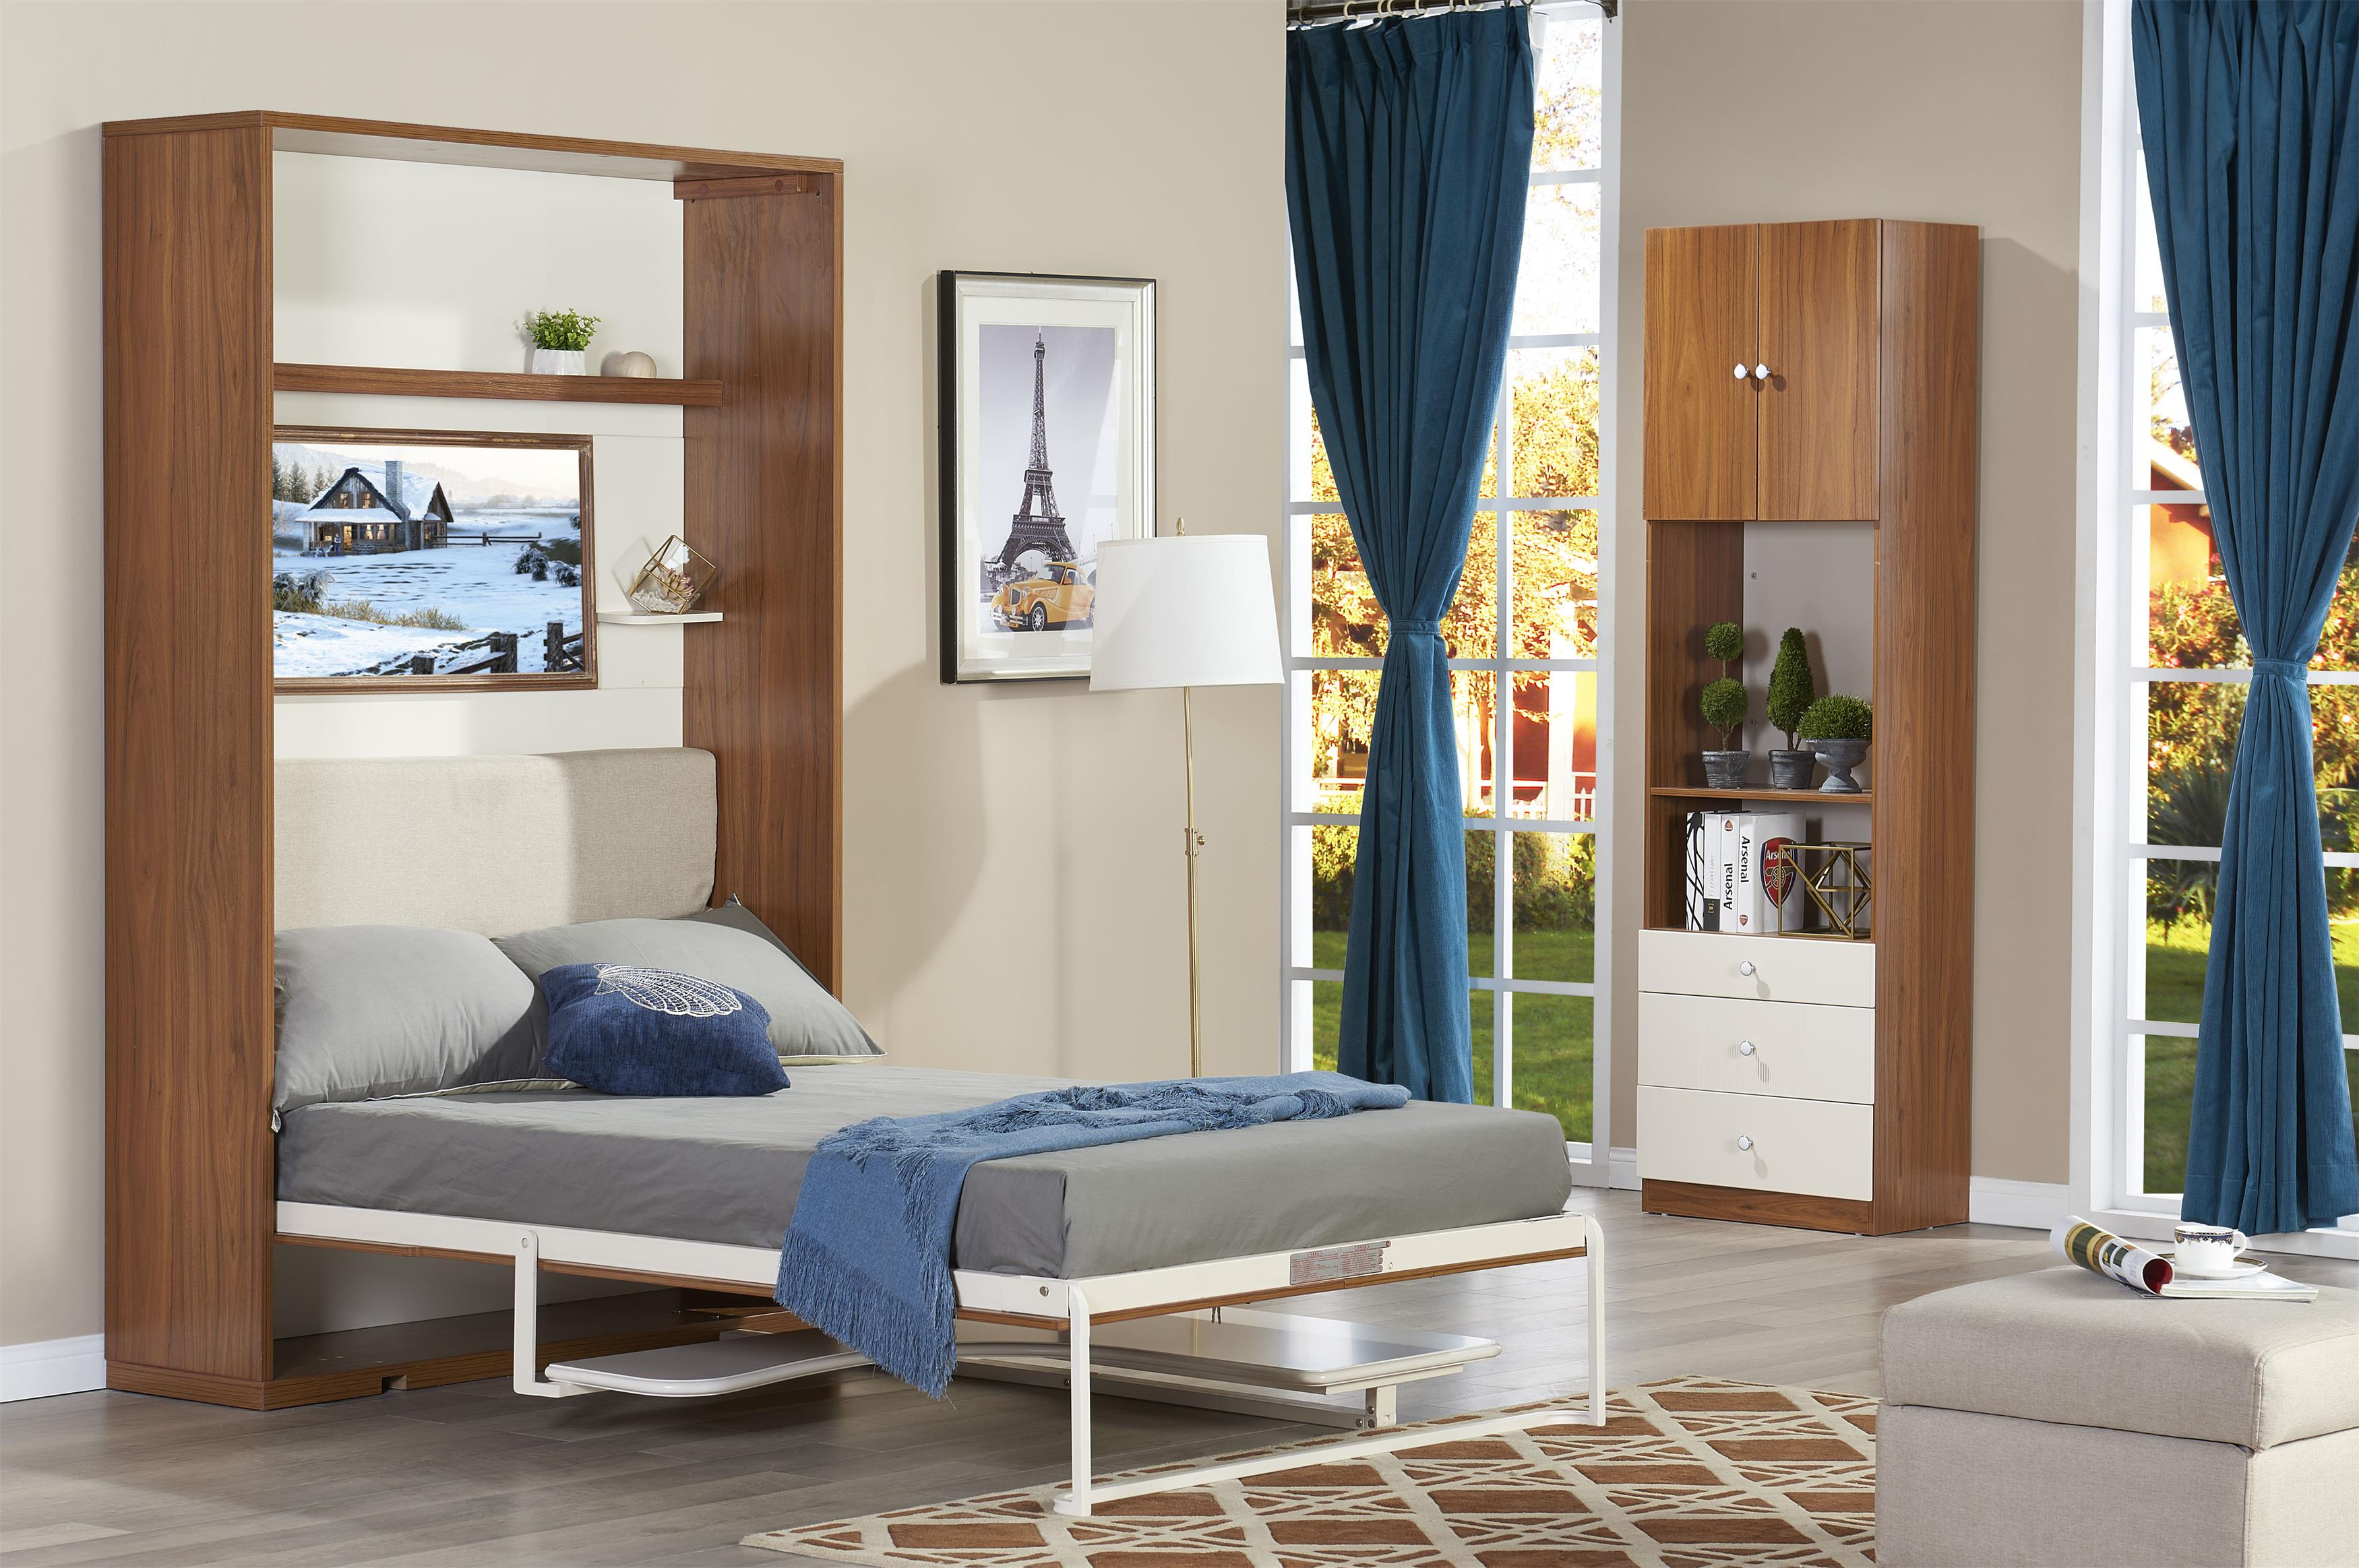 Save Spacing Transverse Table Function Wall Bed